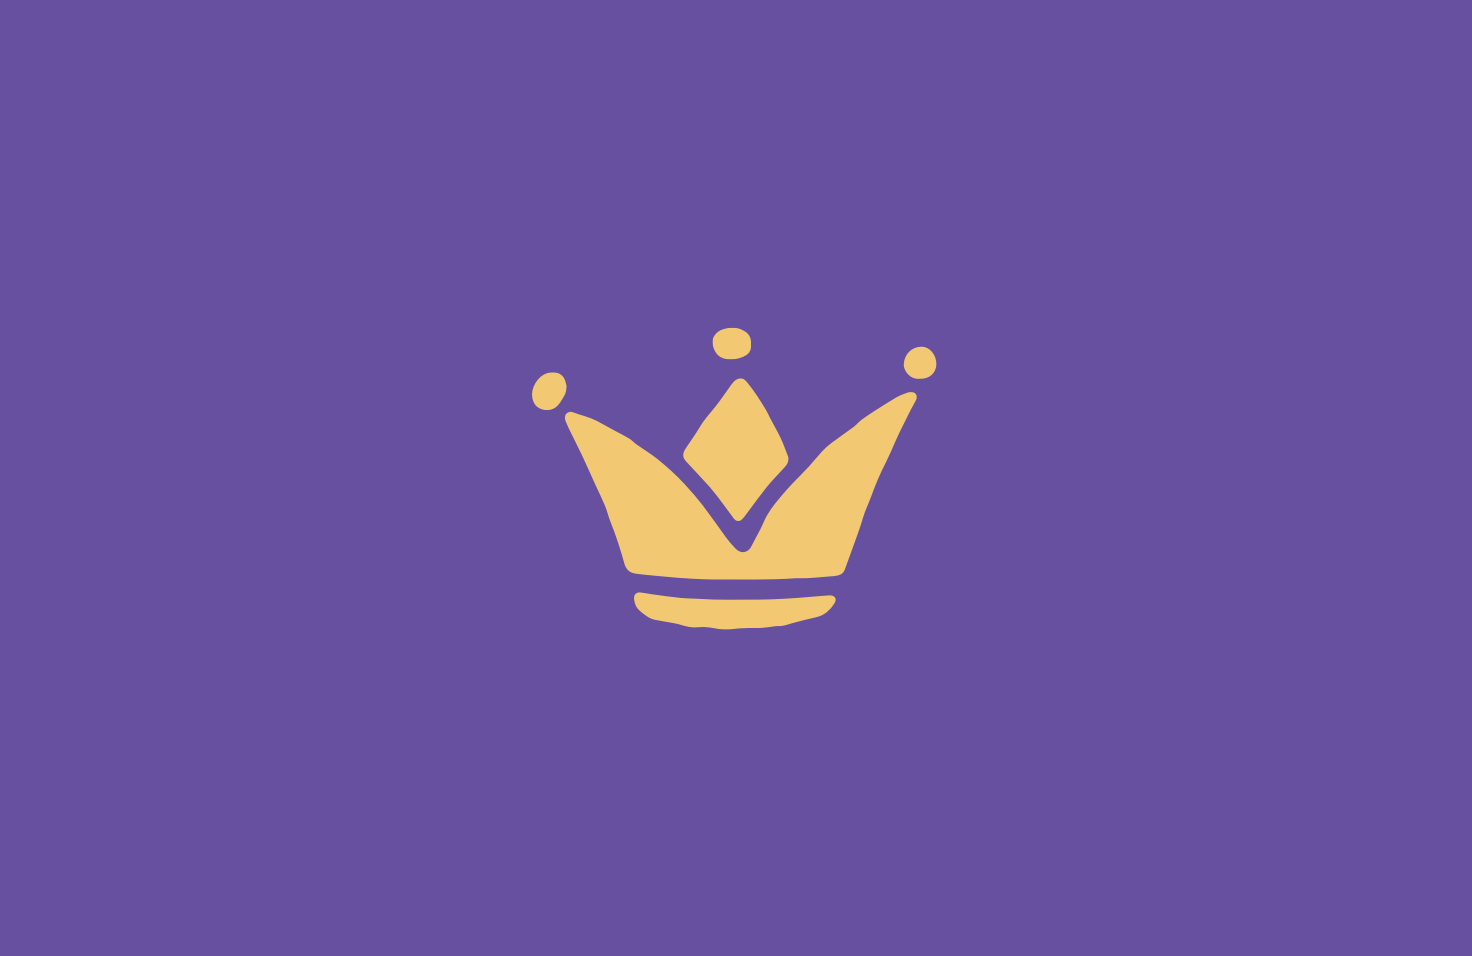 Placeholder Image of Yellow Crown on Purple background